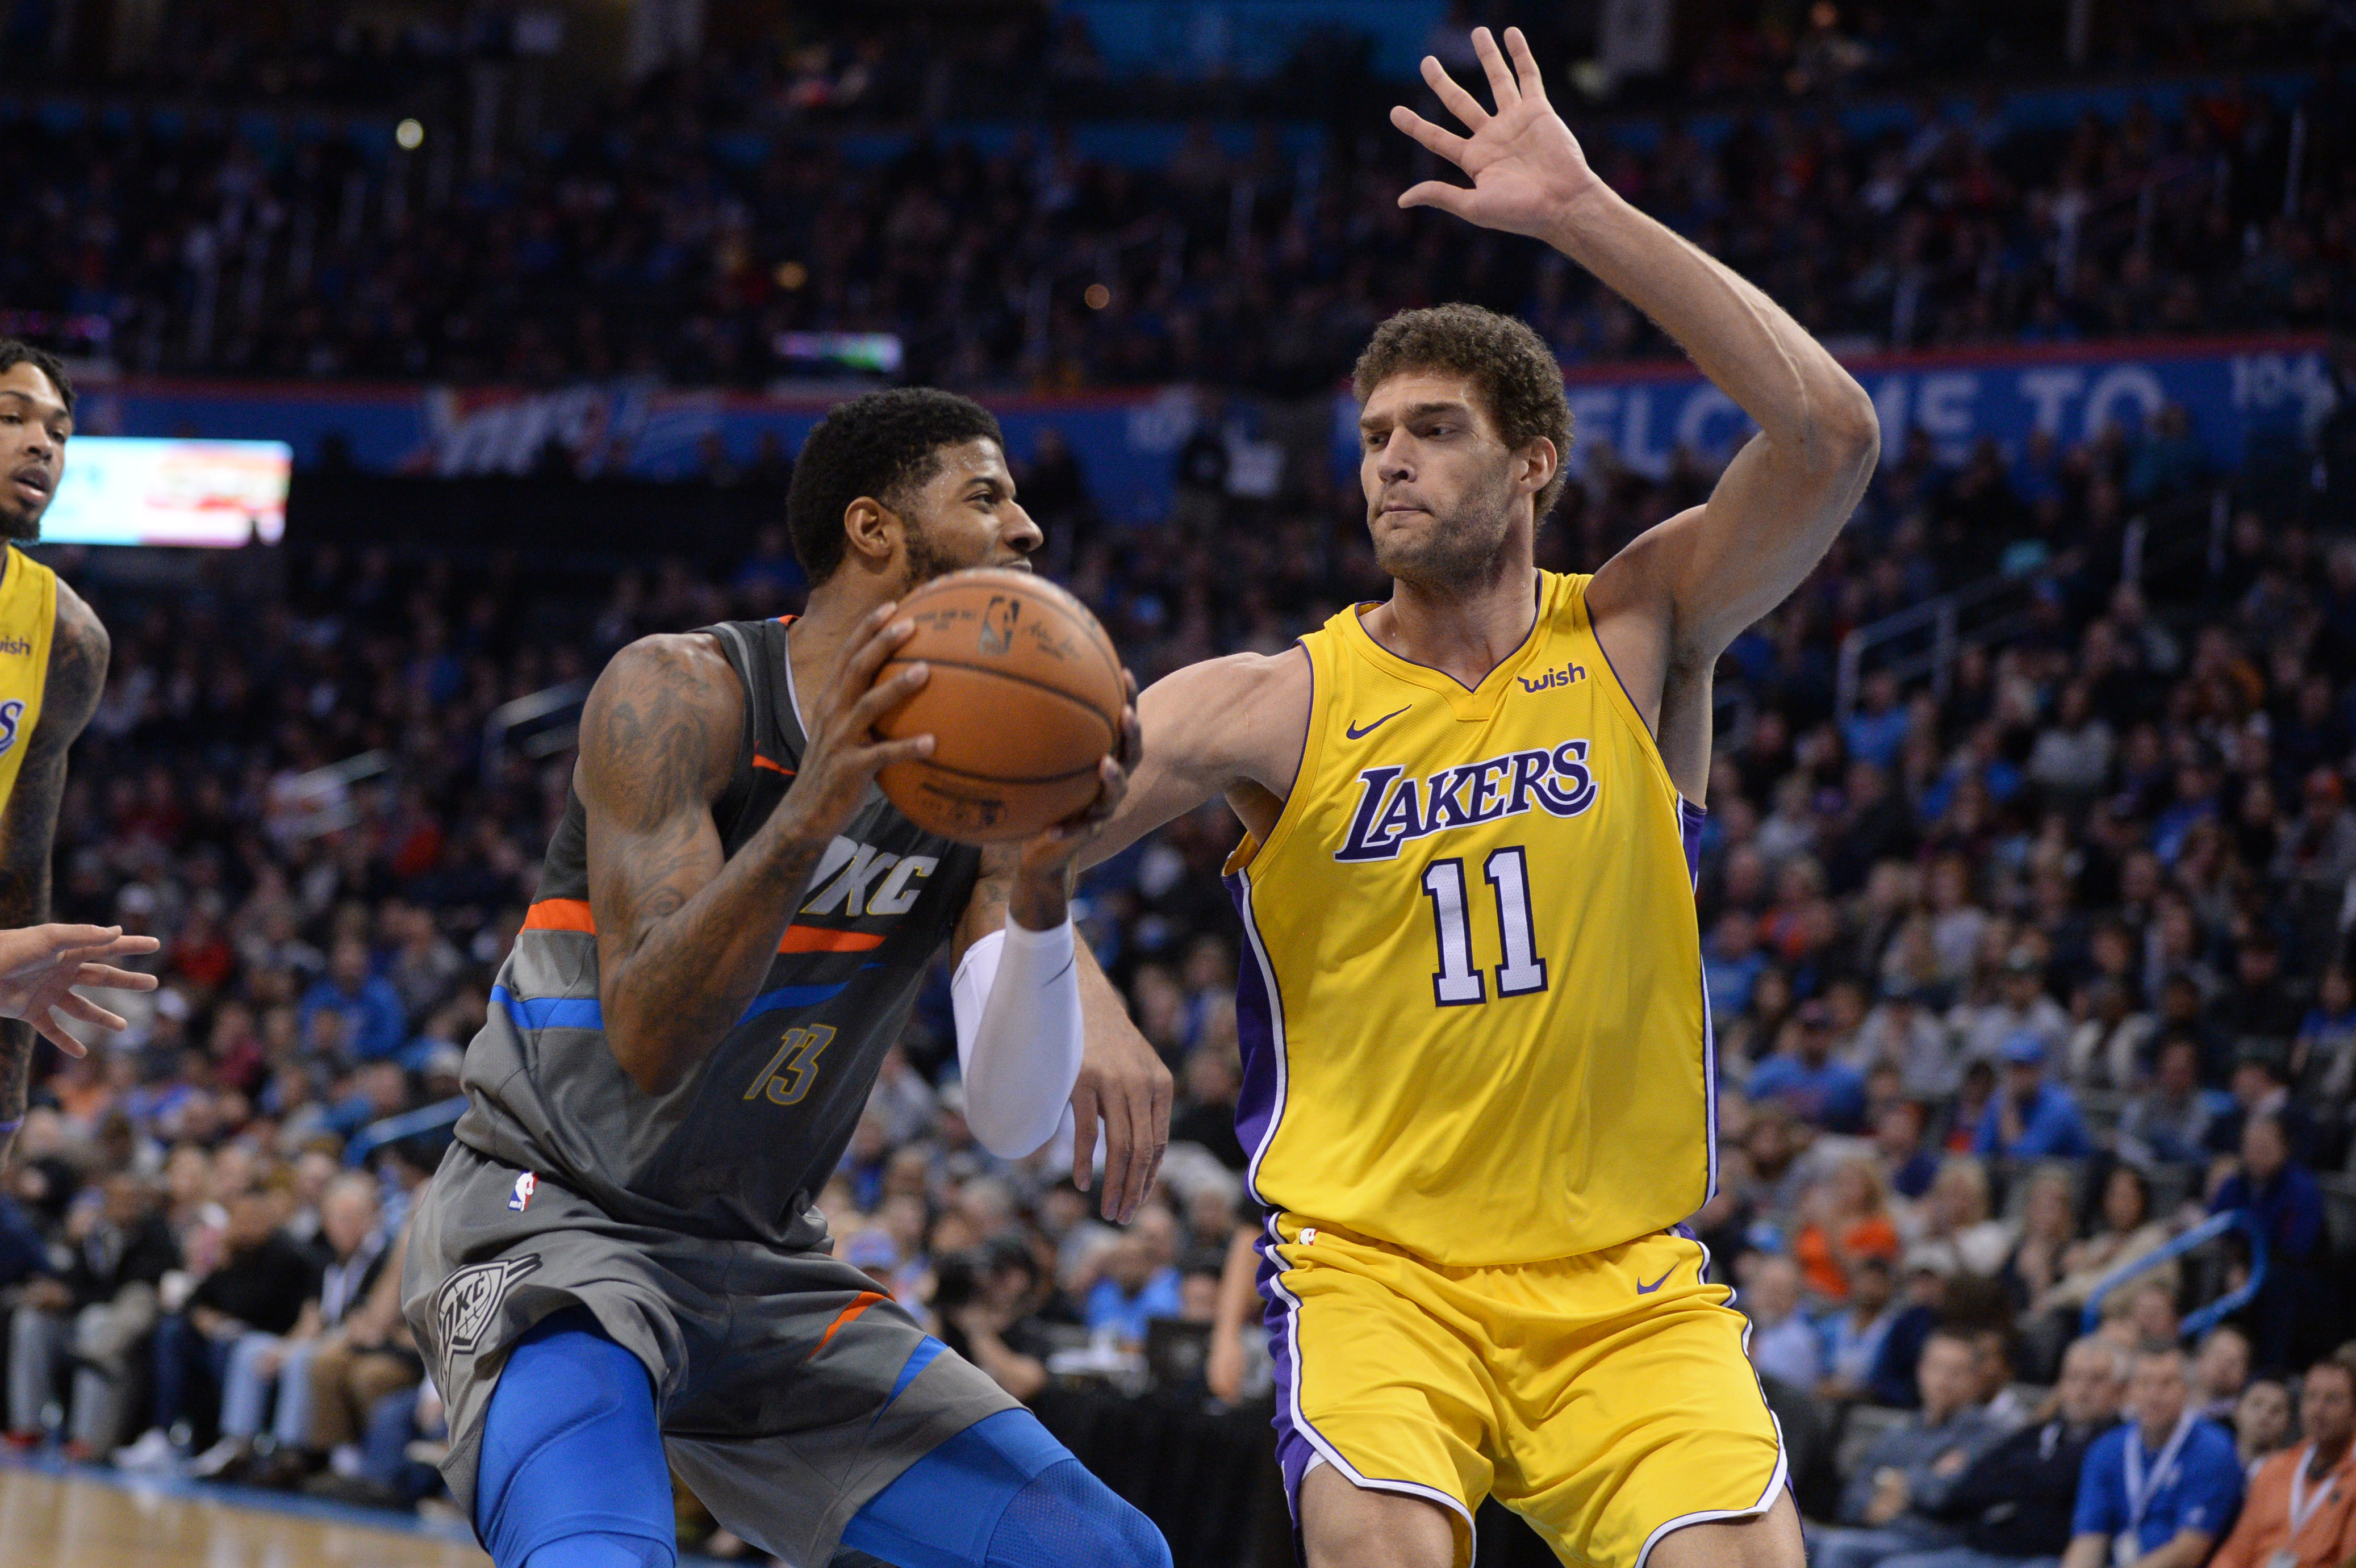 With Westbrook and Carmelo injured, Thunder get clobbered by Lakers